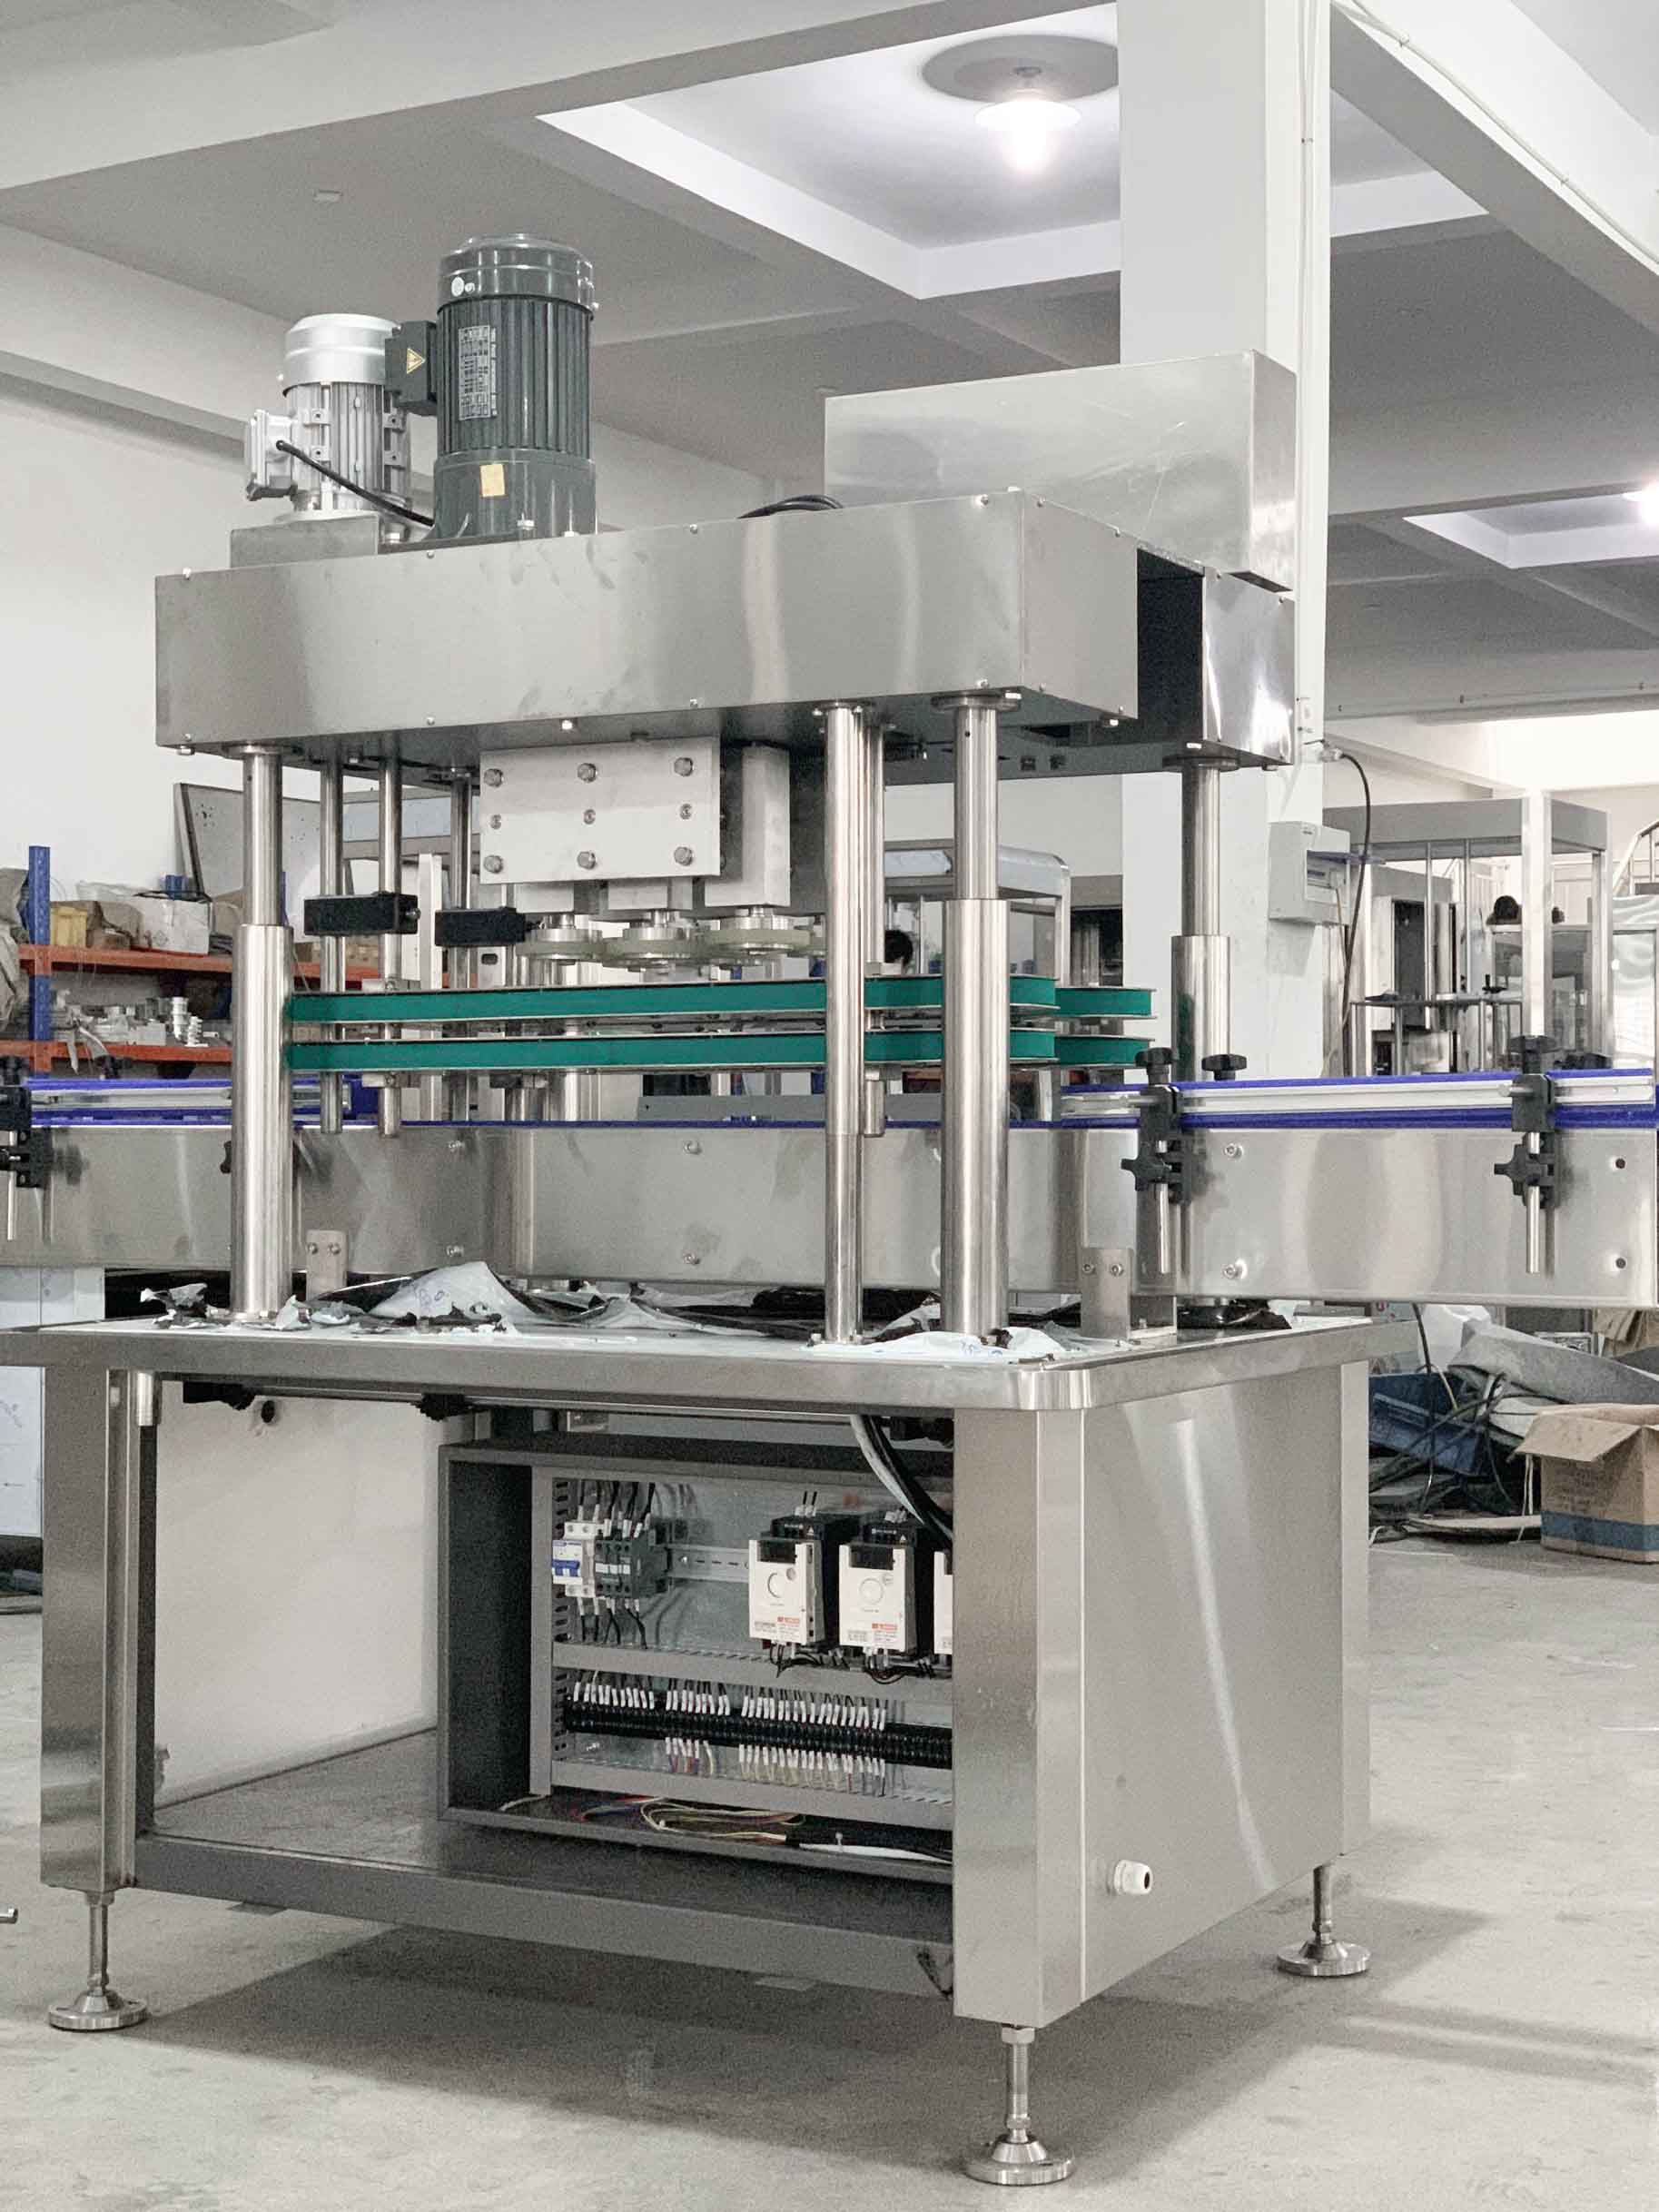 【2020 September 9】Another batch of washing gel filling equipment has been manufactured